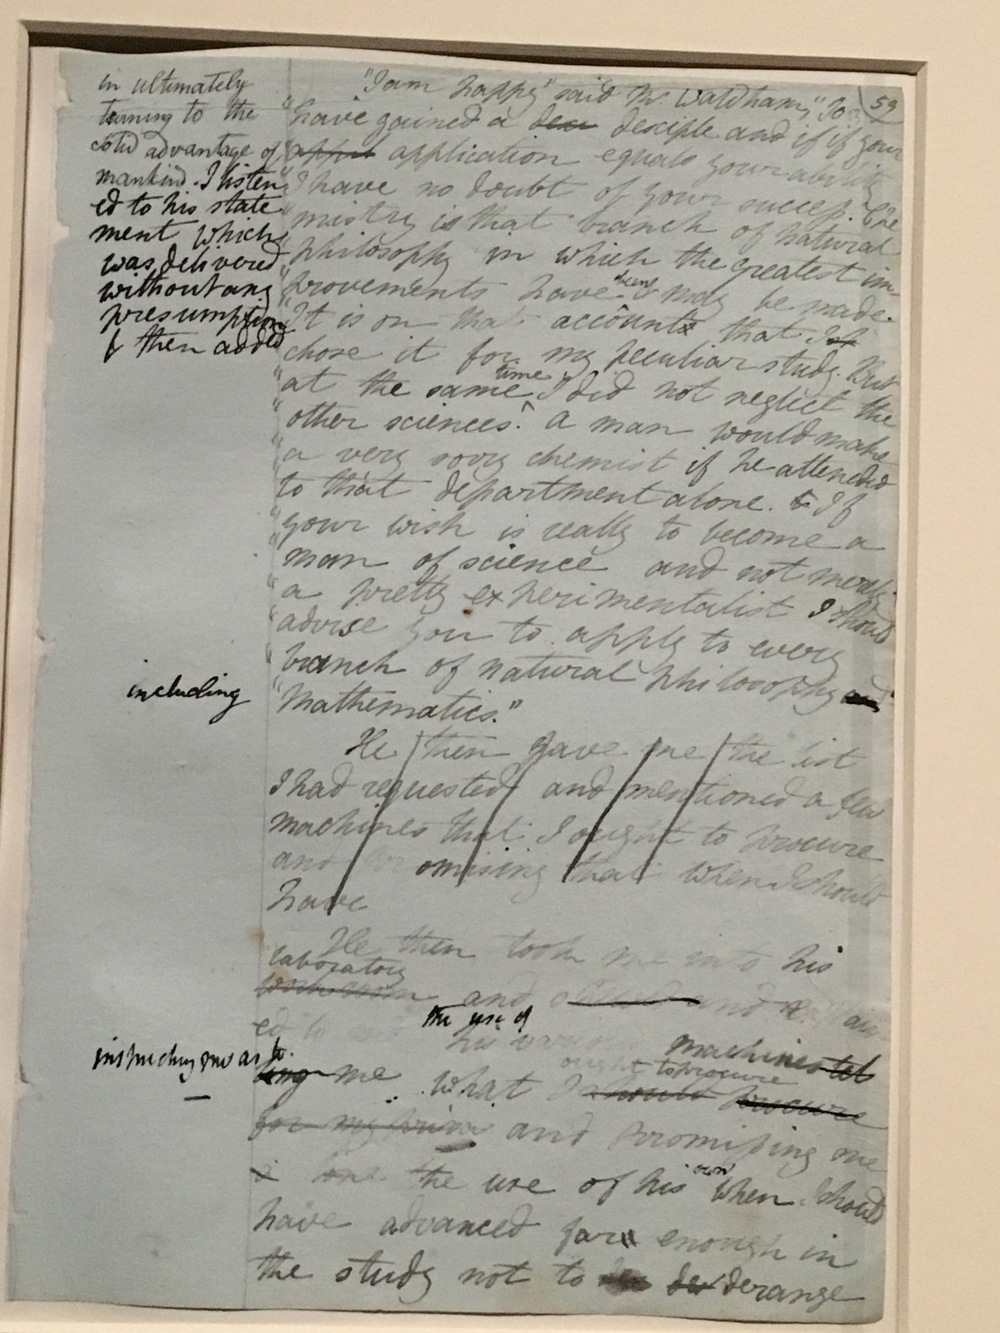 Page from the manuscript of Frankenstein showing extent of collaboration between Mary and Percy. Percy's edits, additions and emendations are in darker ink. (On display at the Bodleian).